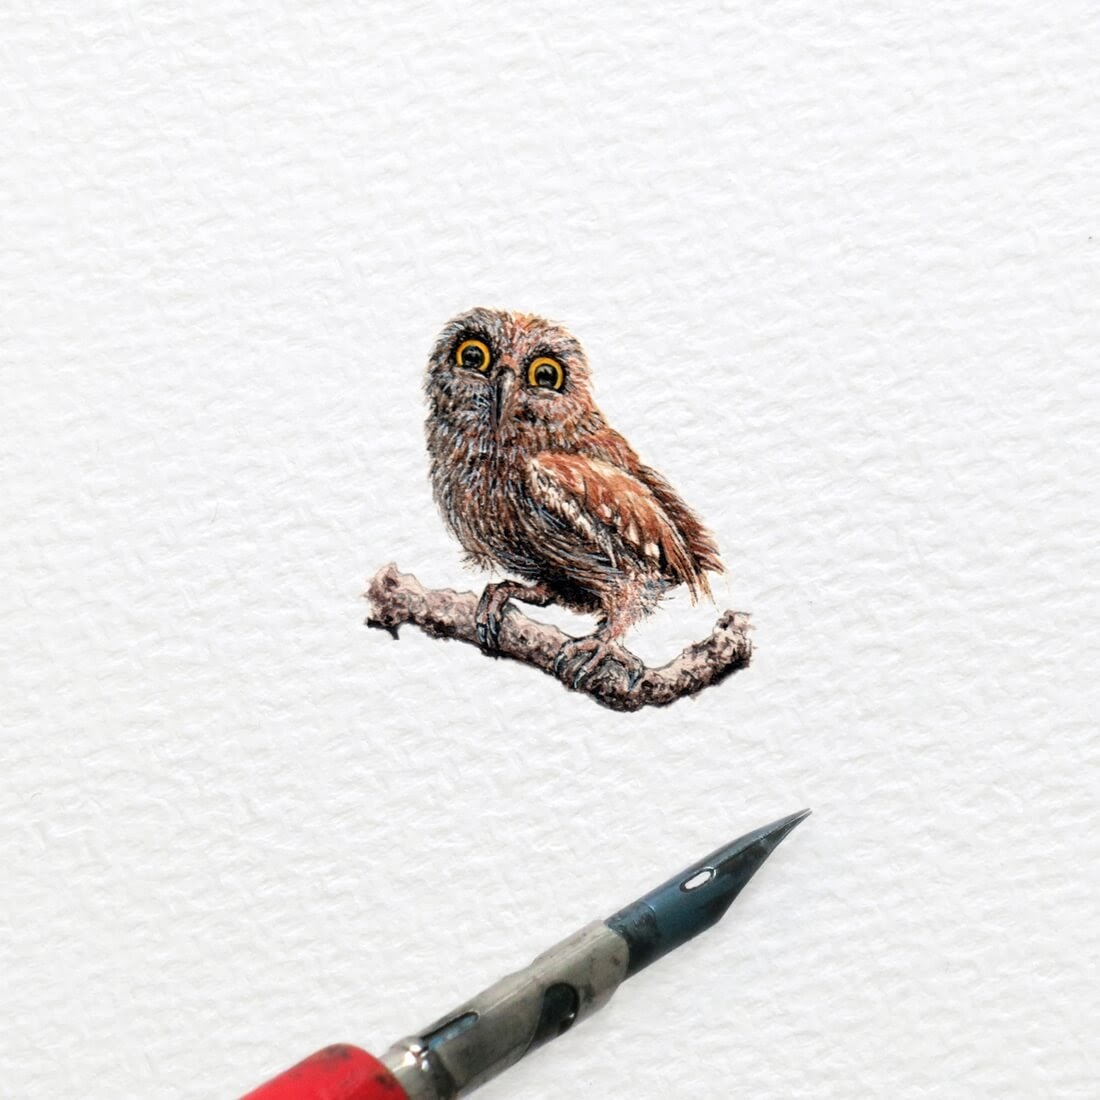 04-Pigwidgeon-The-Owl-Frank Holzenburg Miniature Drawings and Paintings of Animals-www-designstack-co